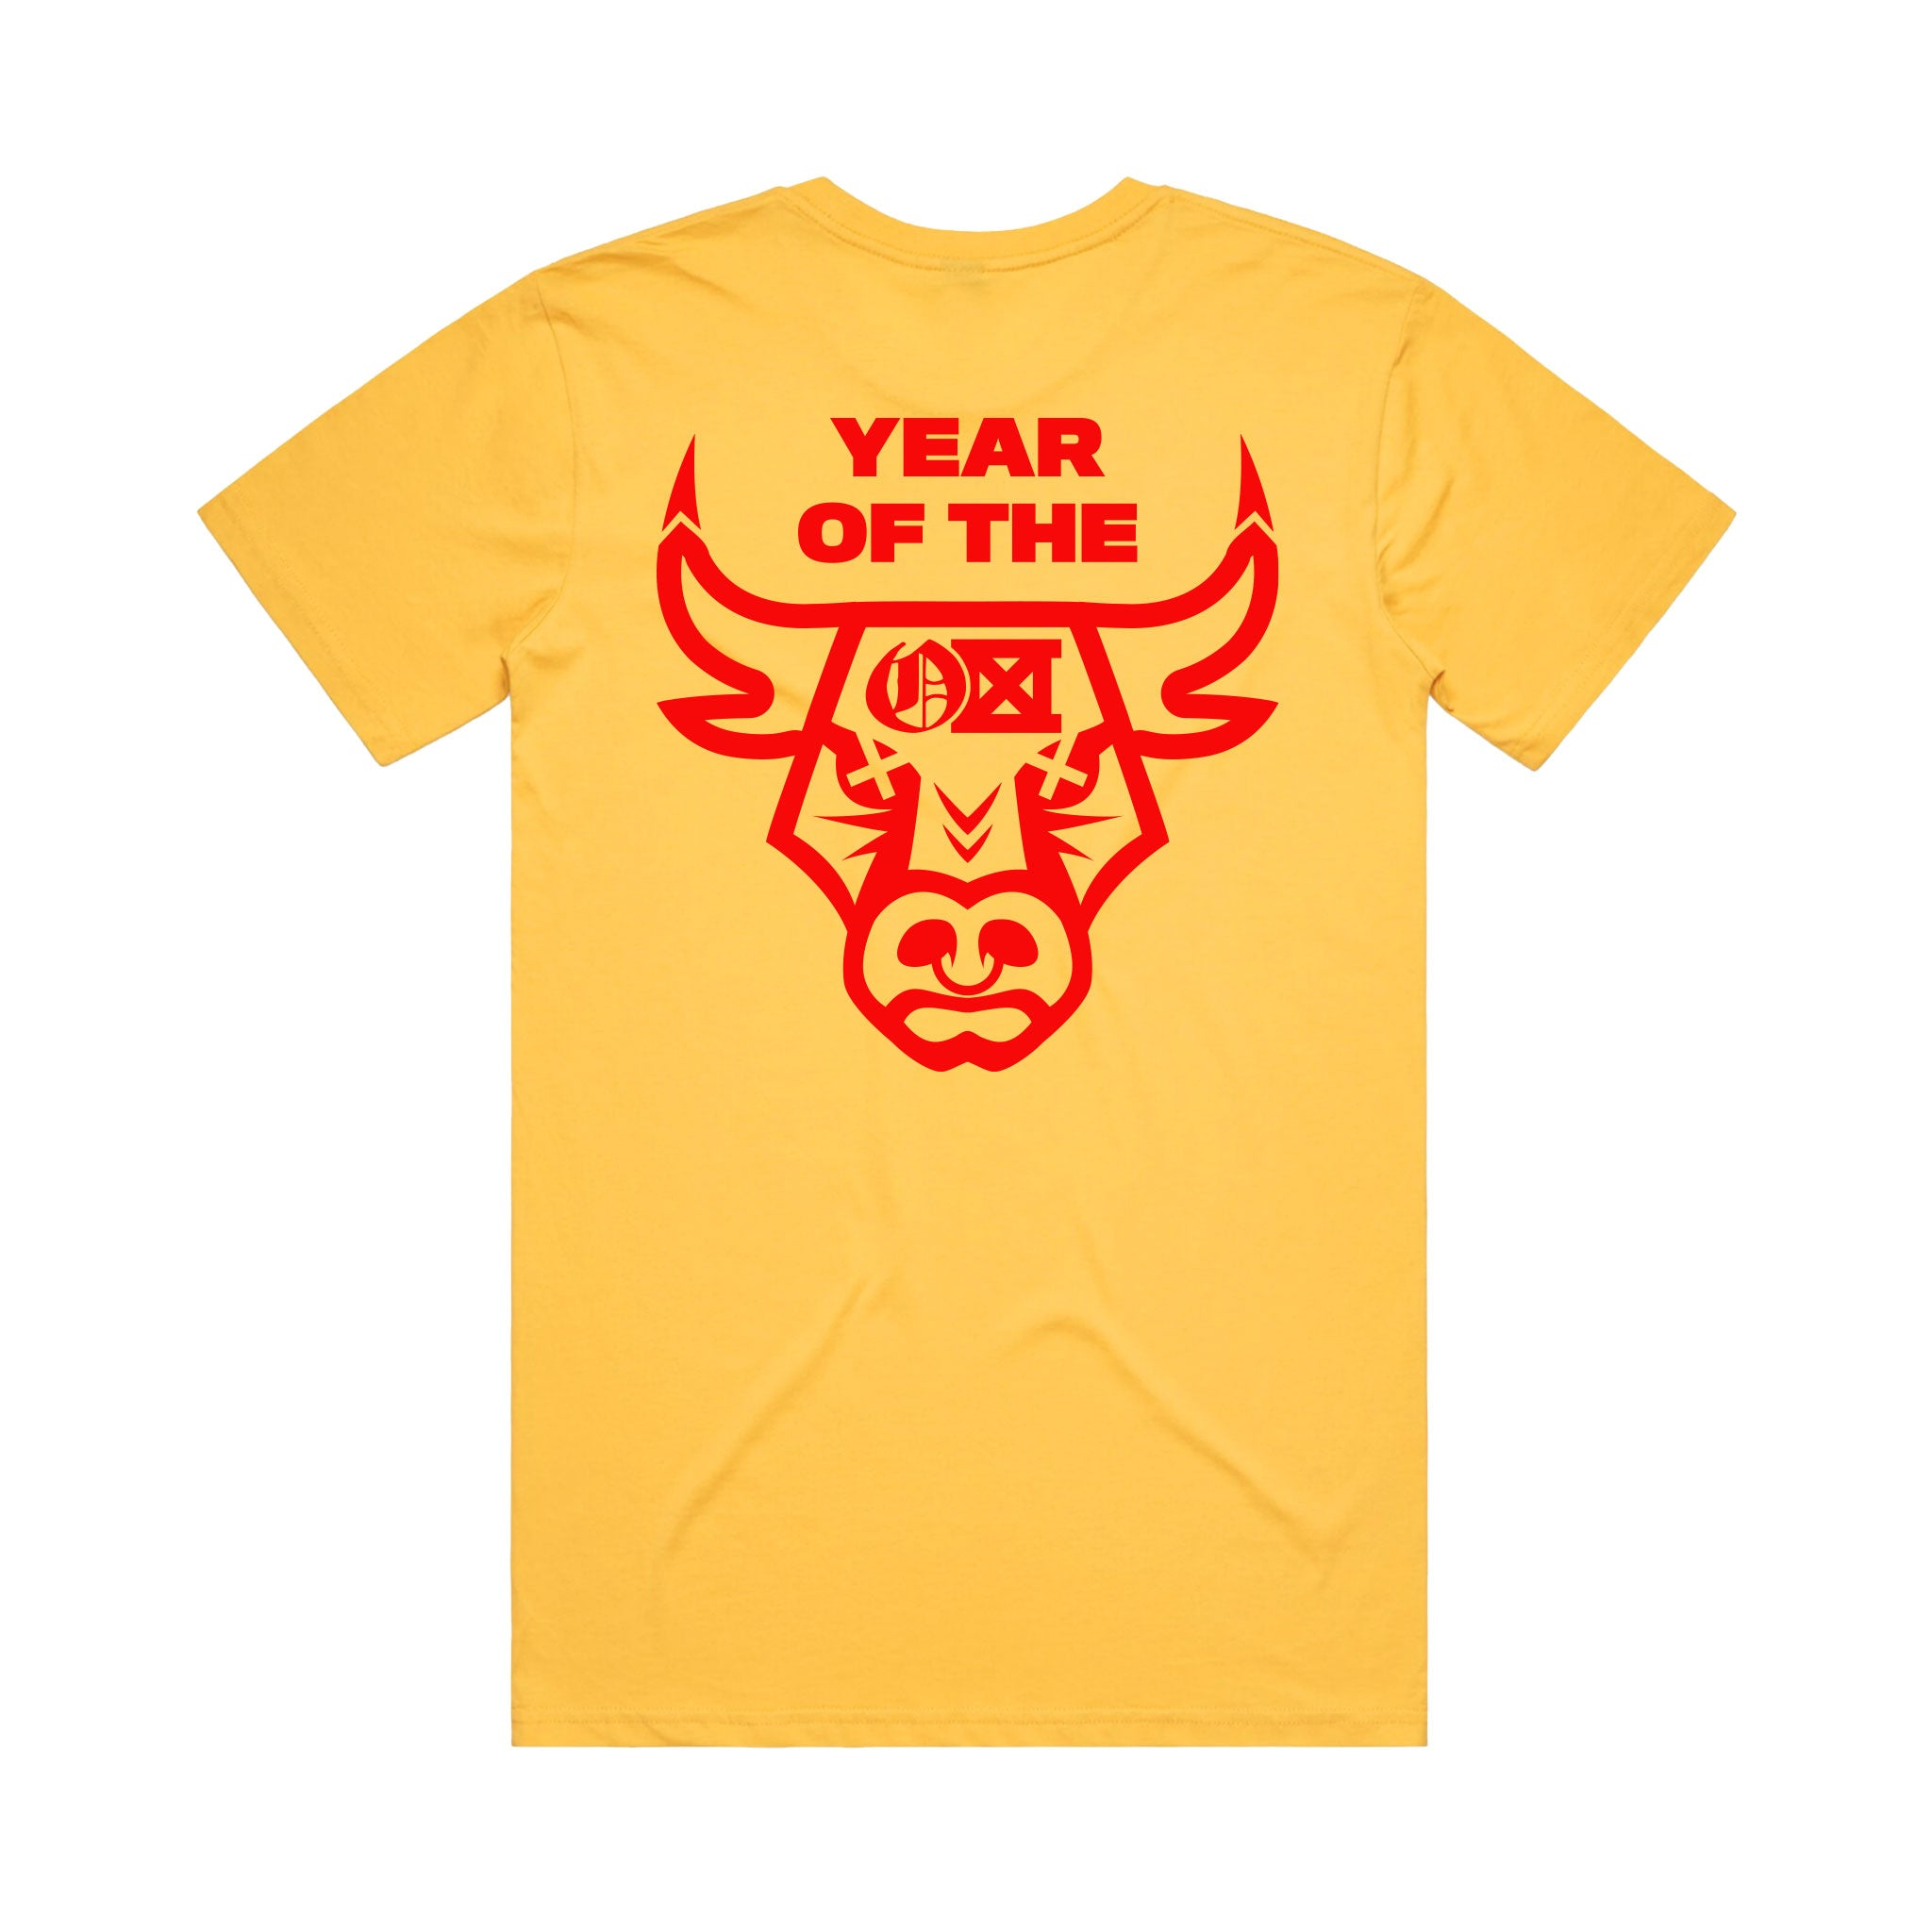 YEAR OF THE OX Tee - Yellow